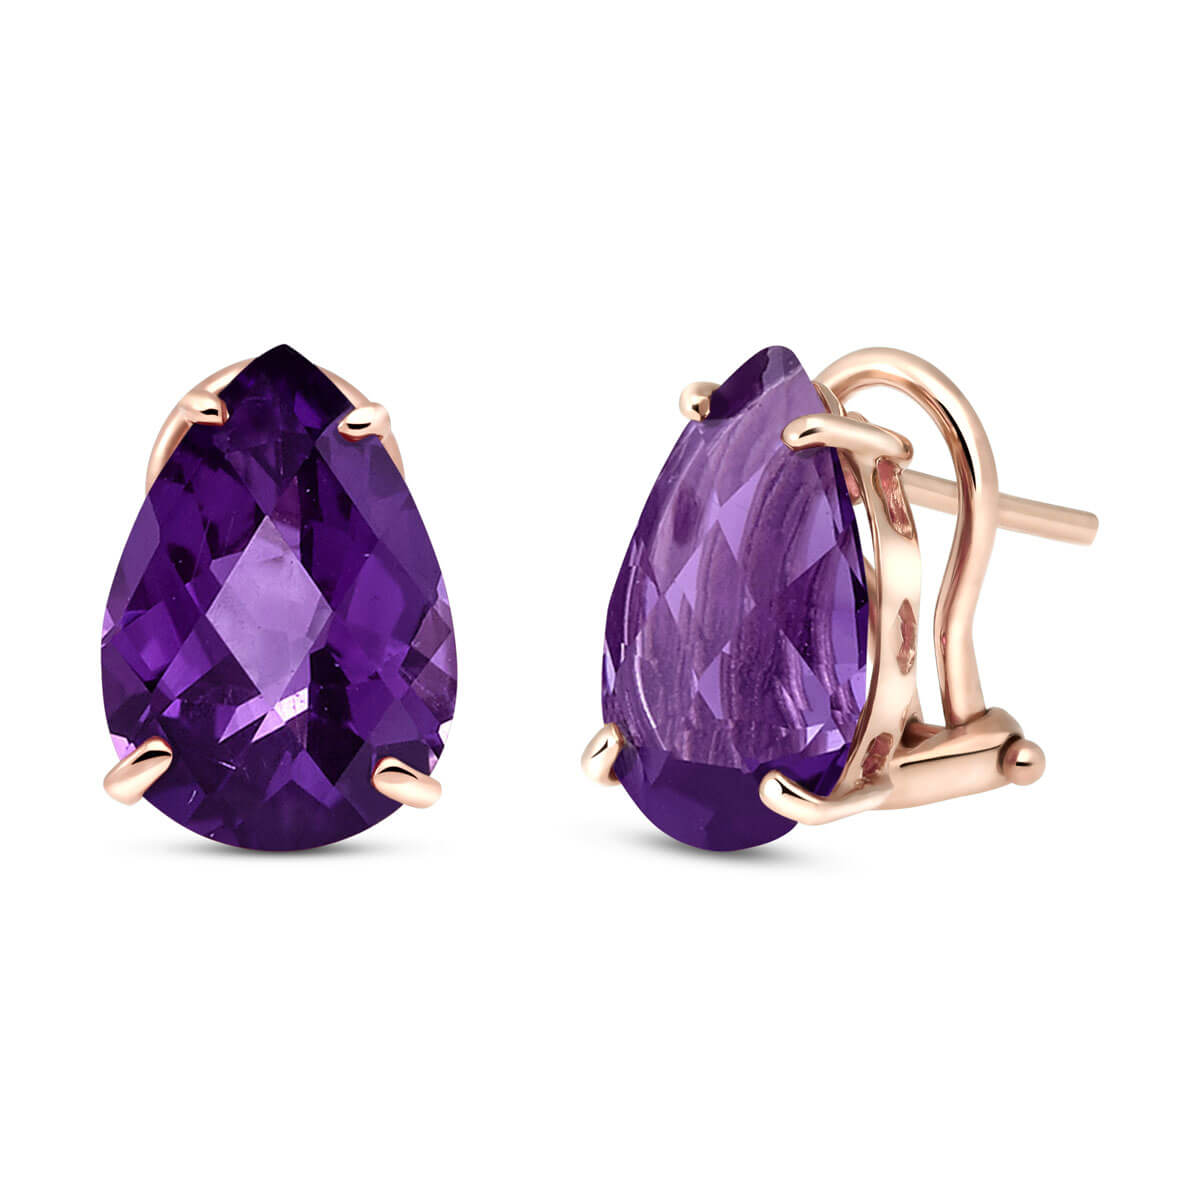 Amethyst Droplet Stud Earrings 10 ctw in 9ct Rose Gold